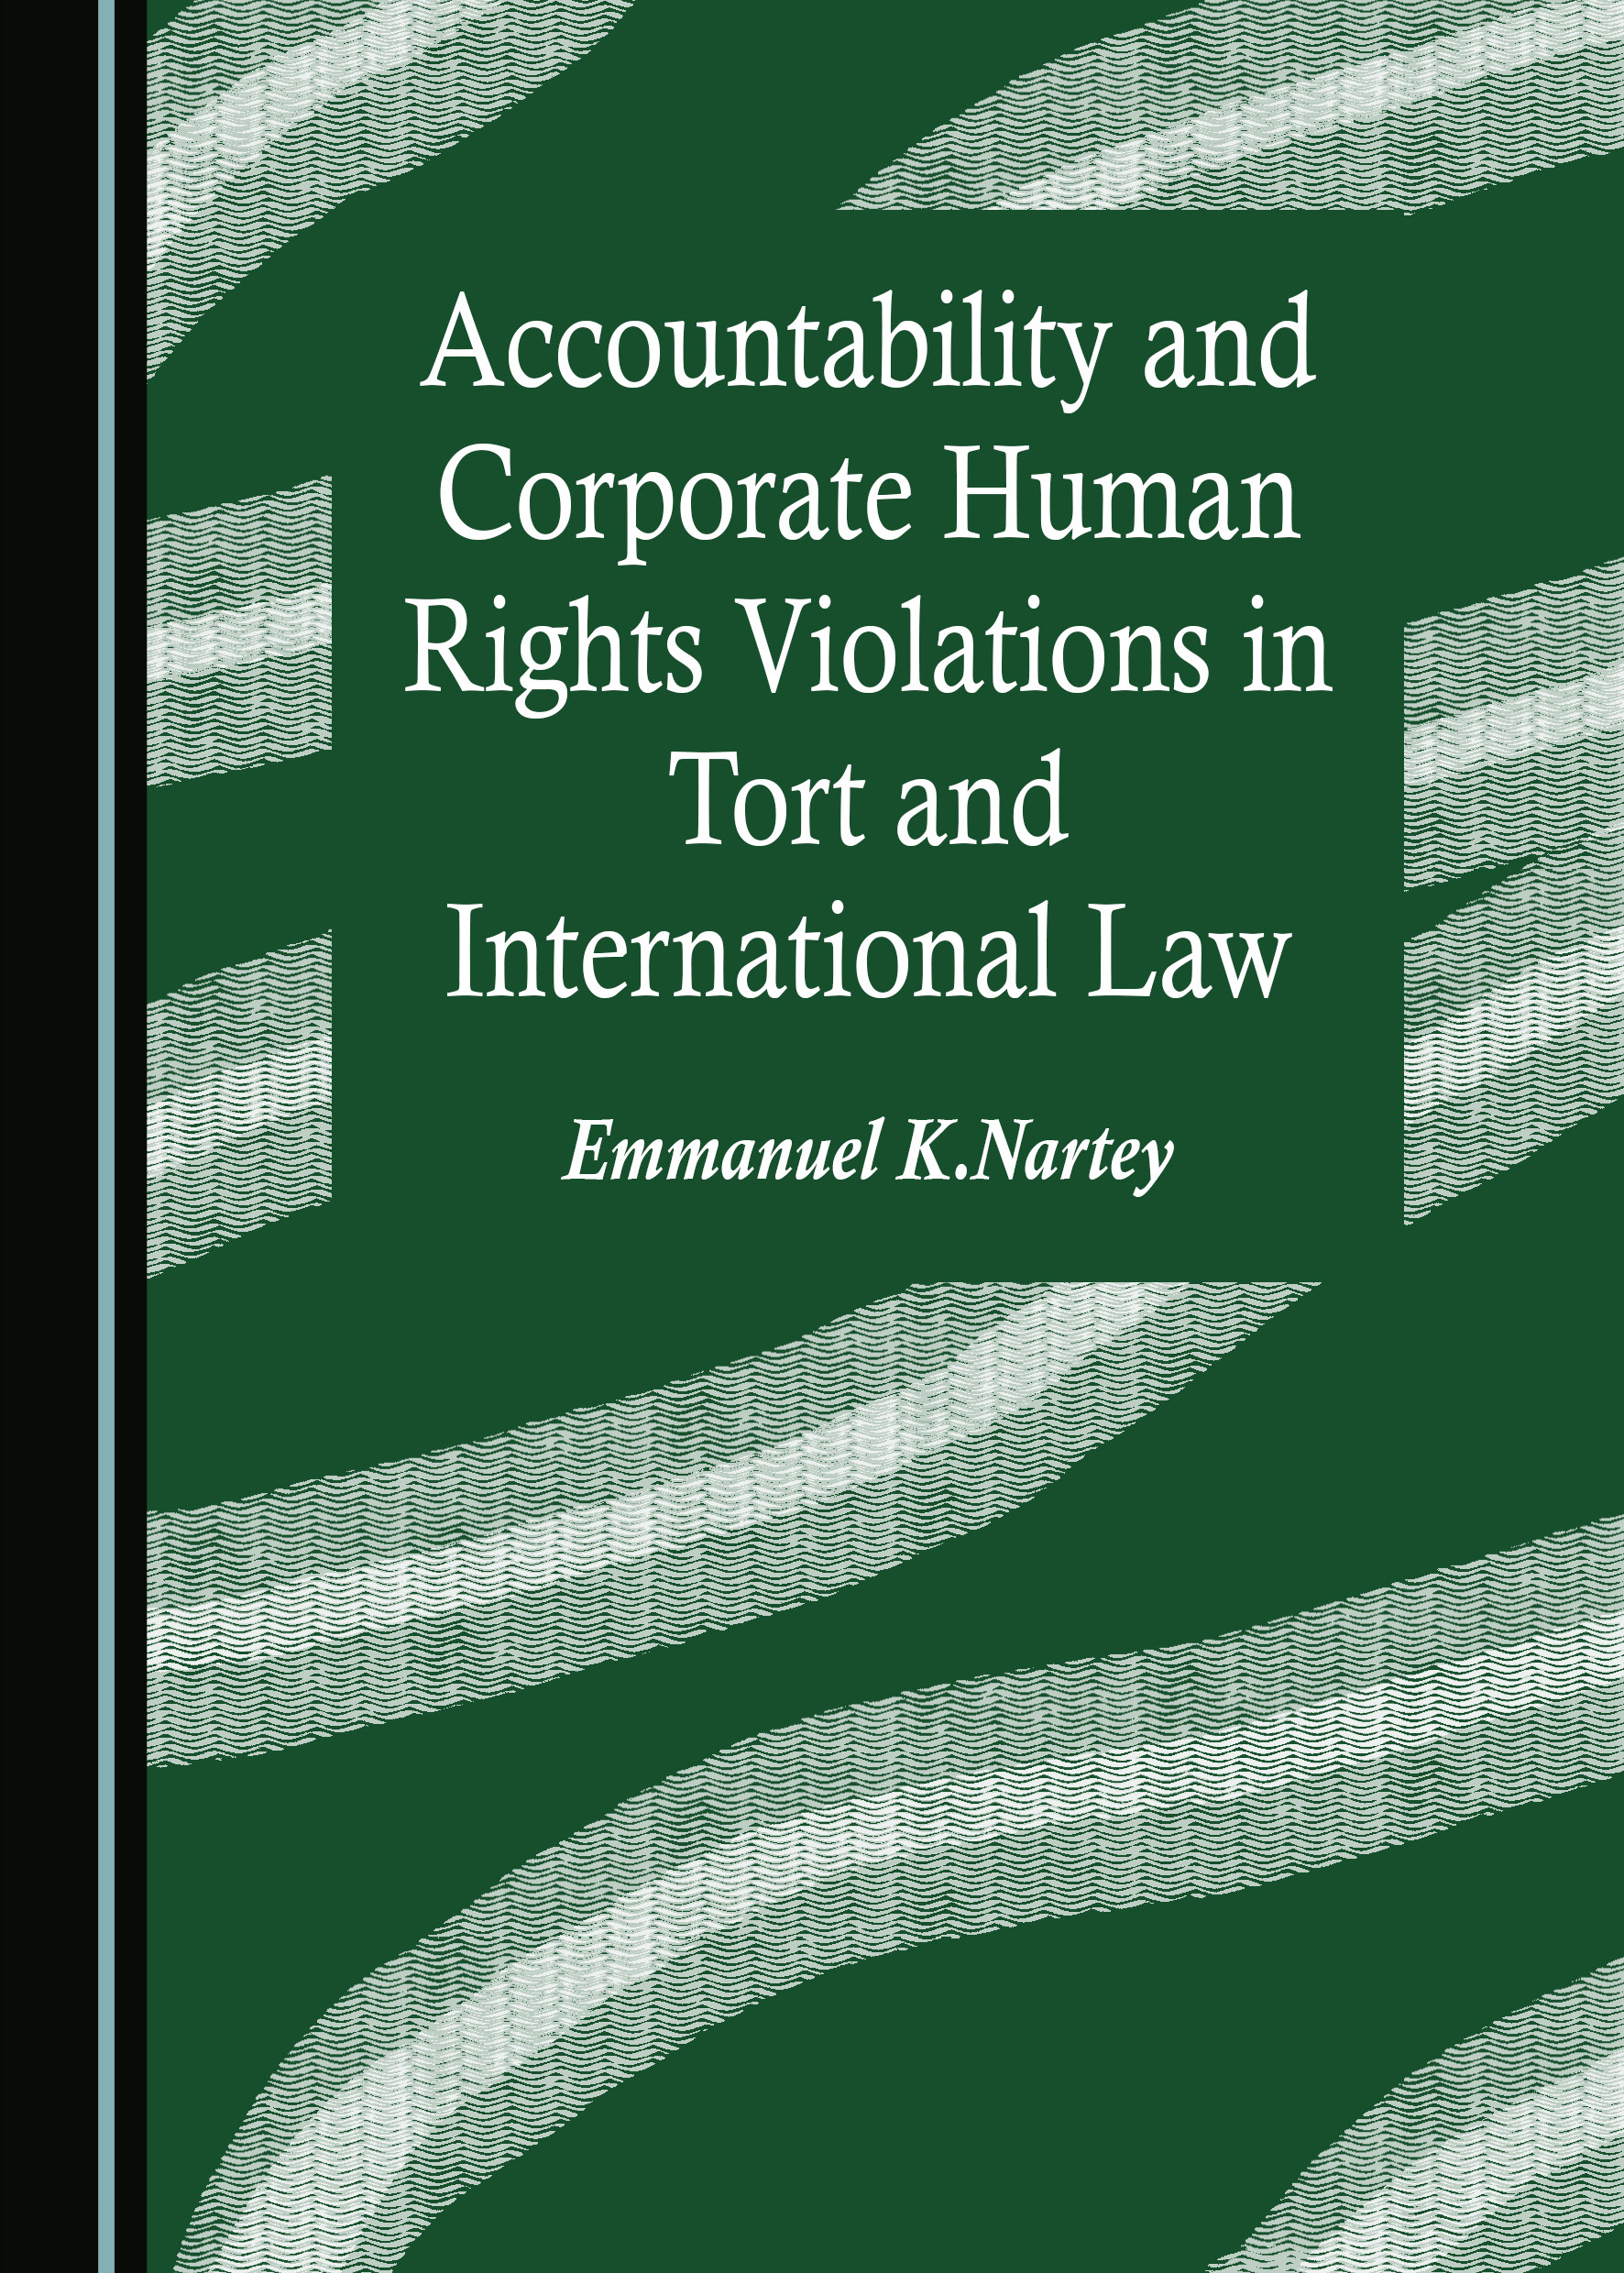 Accountability and Corporate Human Rights Violations in Tort and International Law